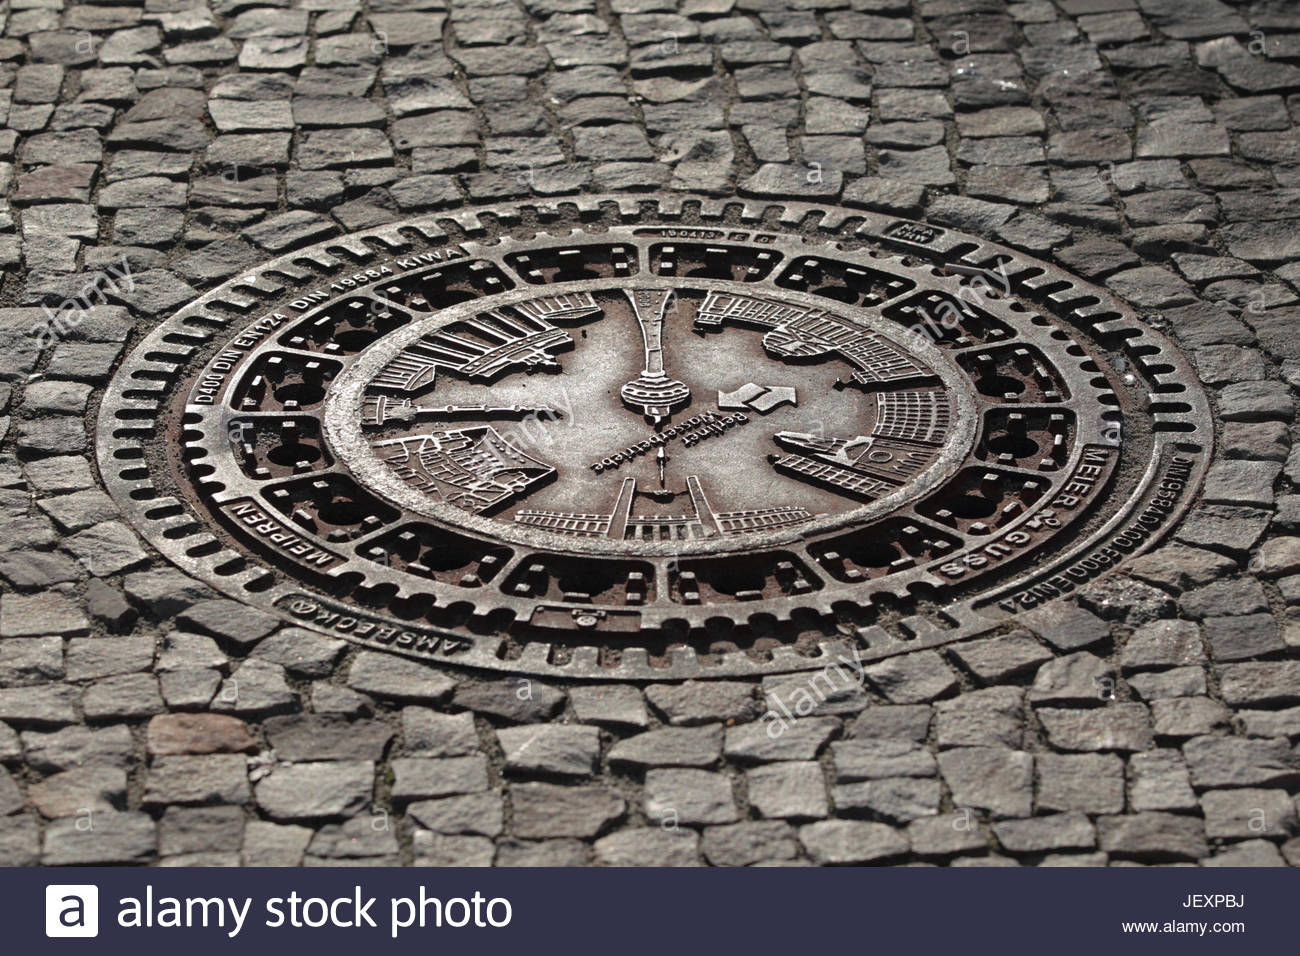 An ornate manhole cover in a cobblestone street. - Stock Image